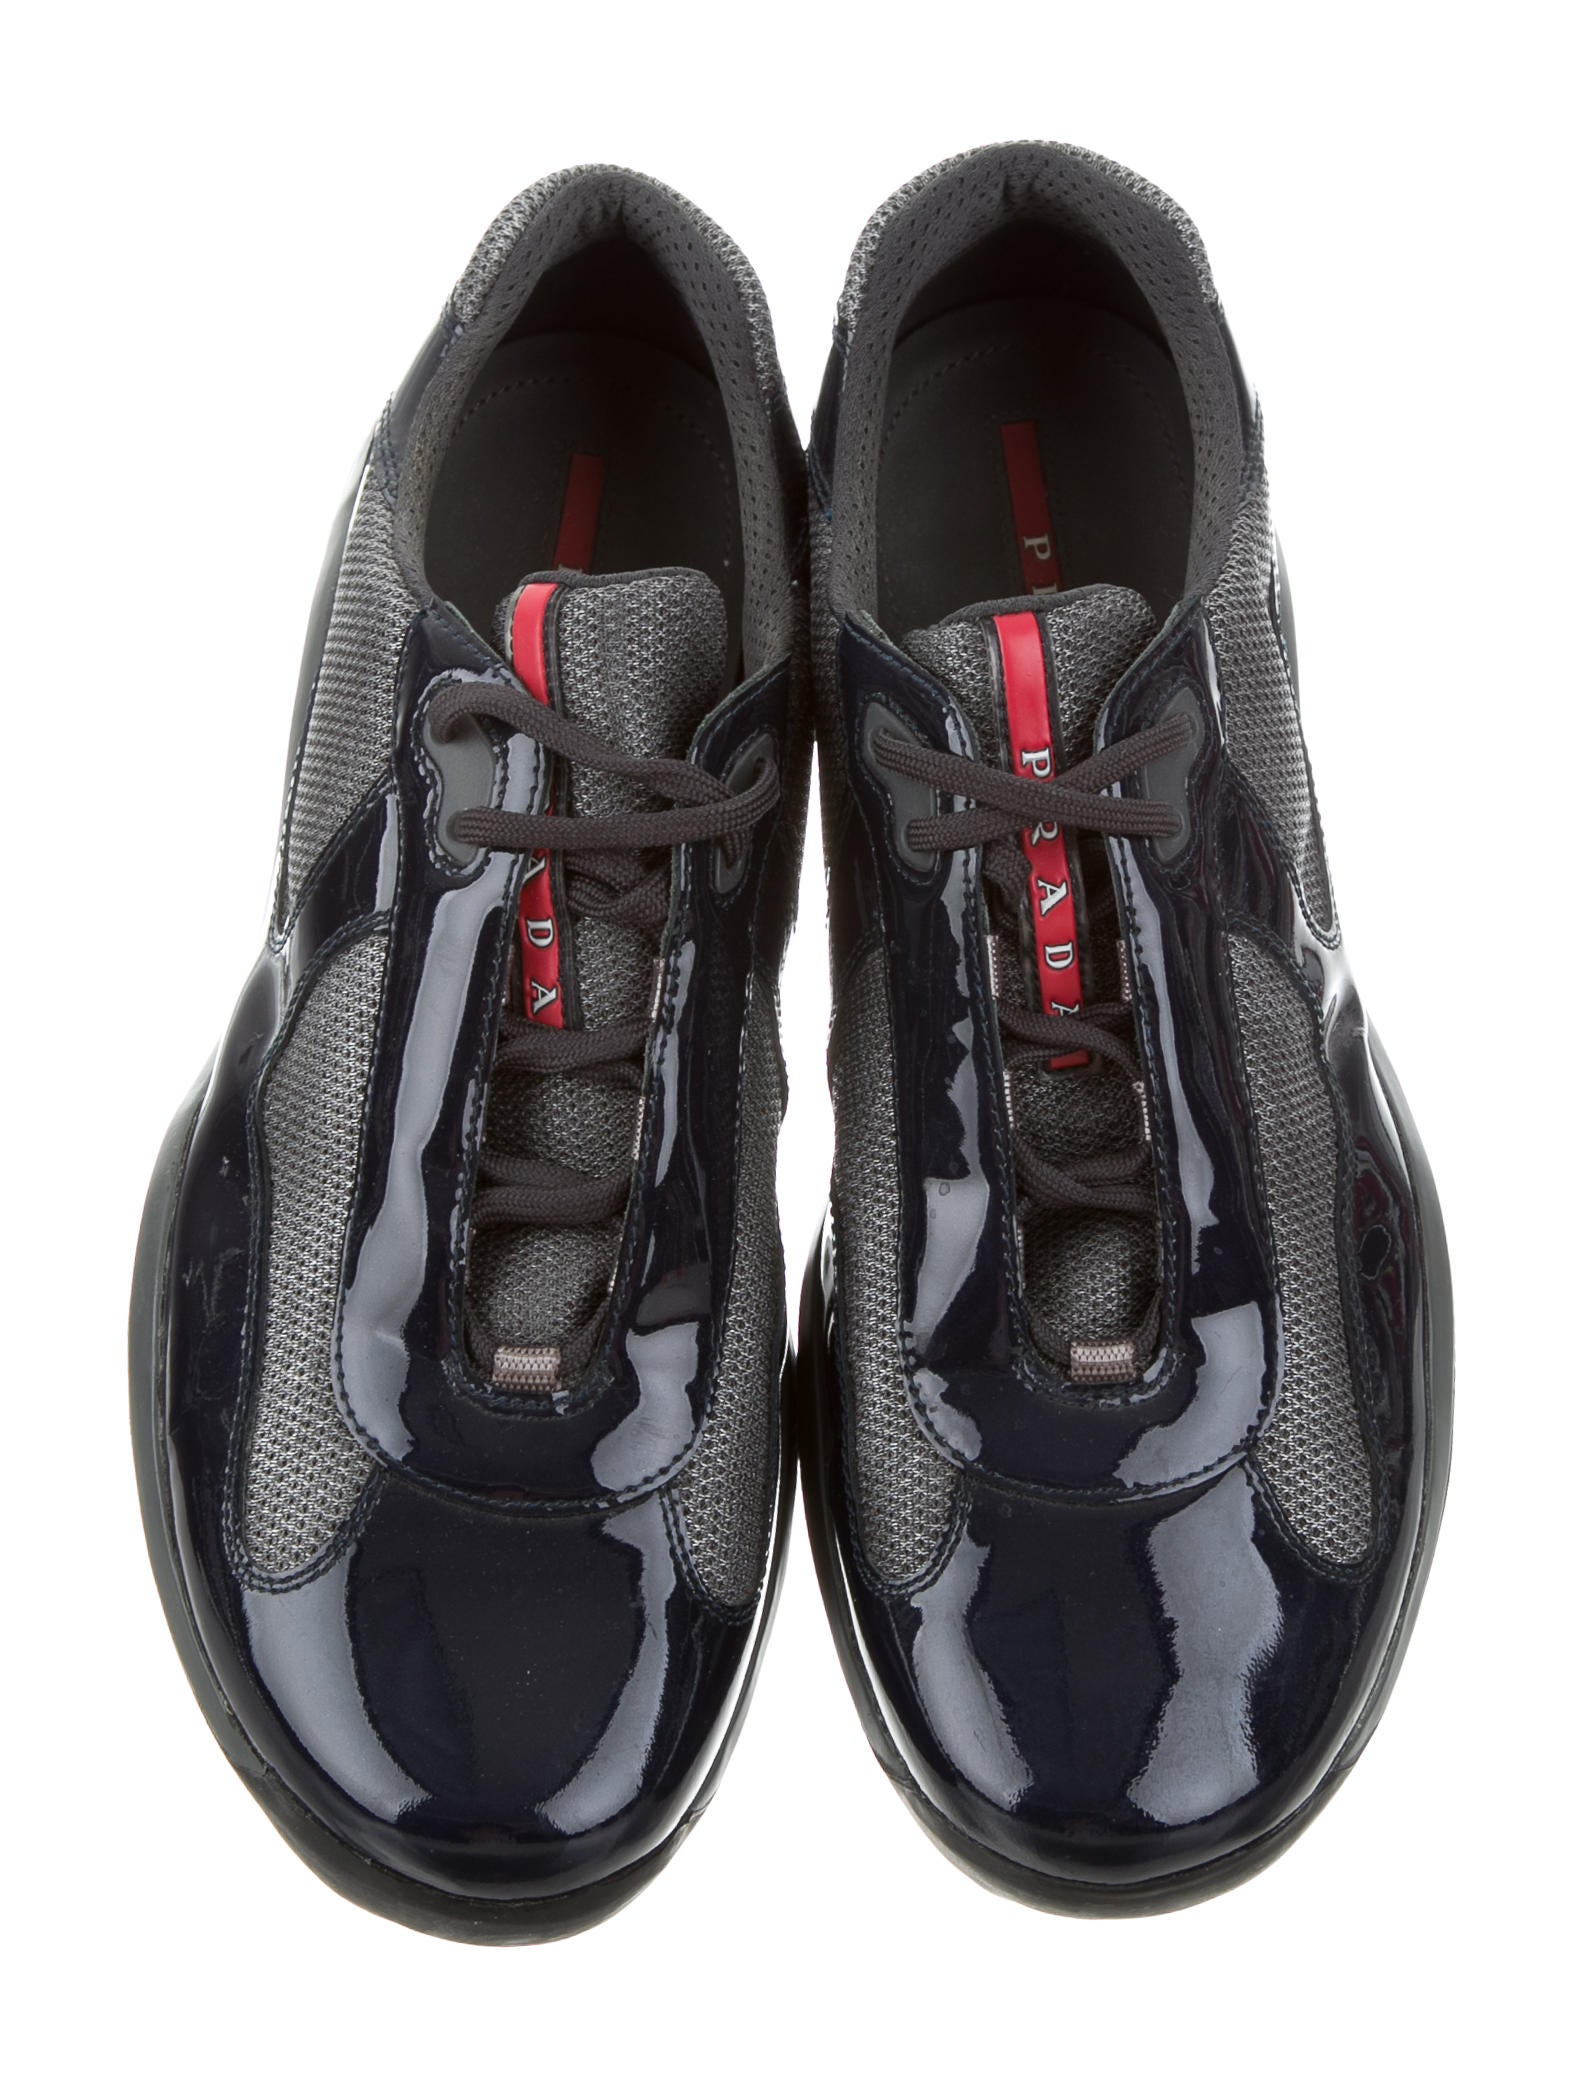 Contemporary Flatware Prada Sport America S Cup Patent Leather Sneakers Shoes